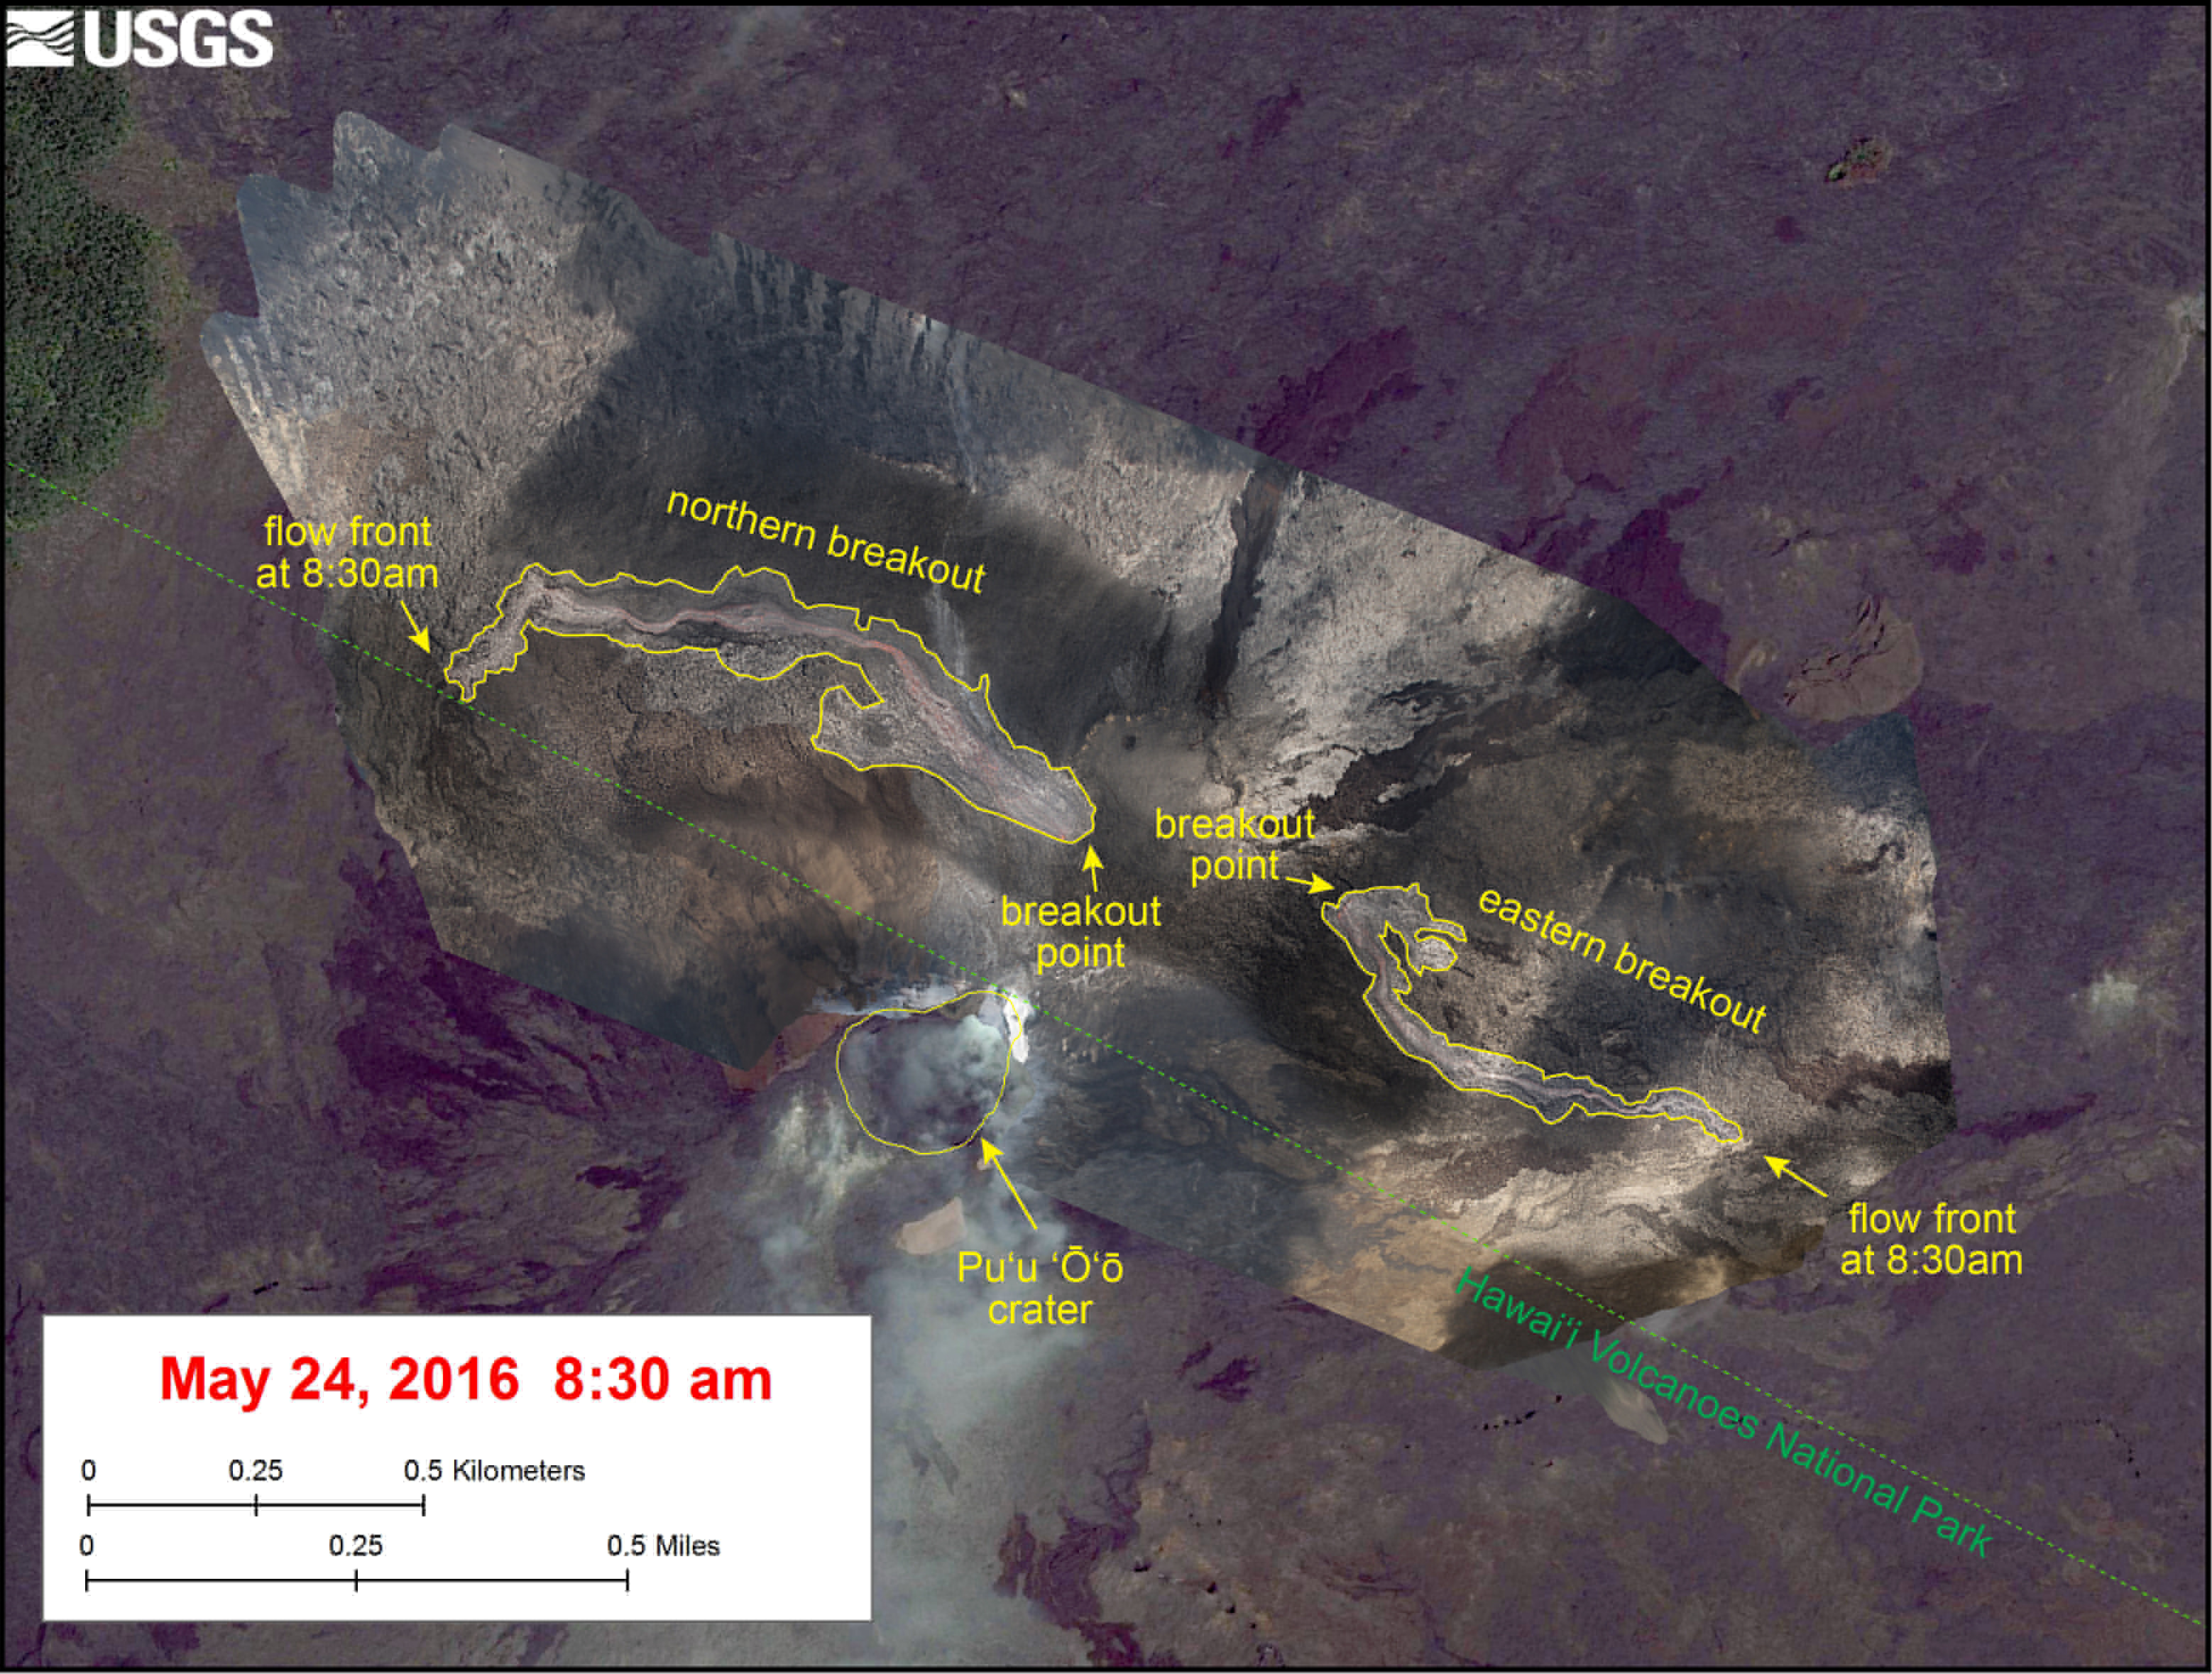 VIDEO: Scientists Flyover, Map New Lava Flow